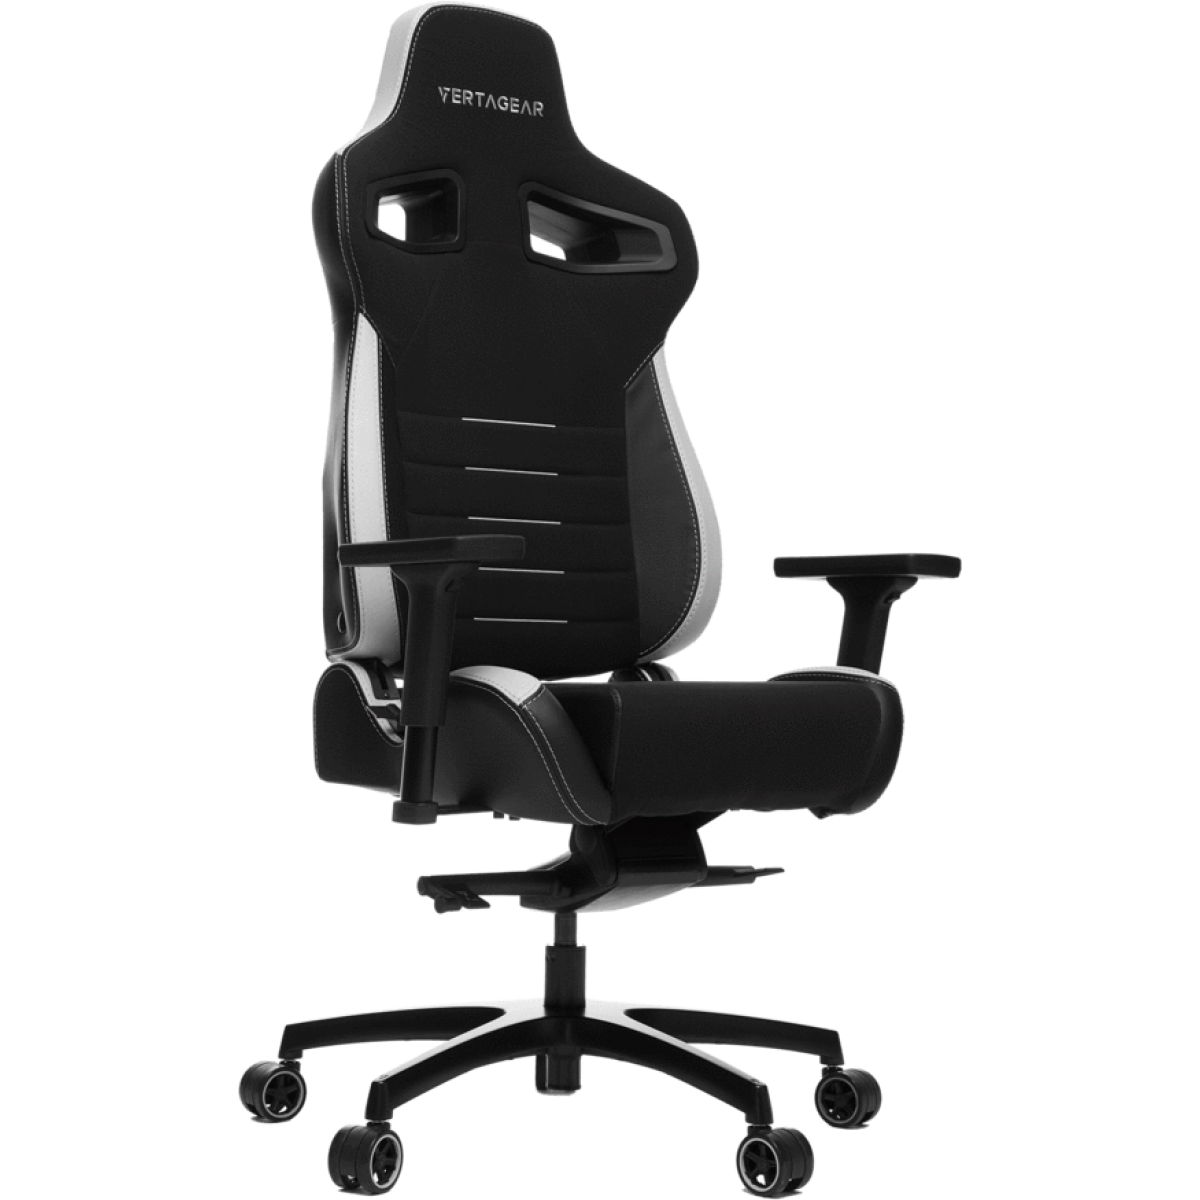 Cadeira Gamer Vertagear Racing PL4500, Black-White, VG-PL4500_WT